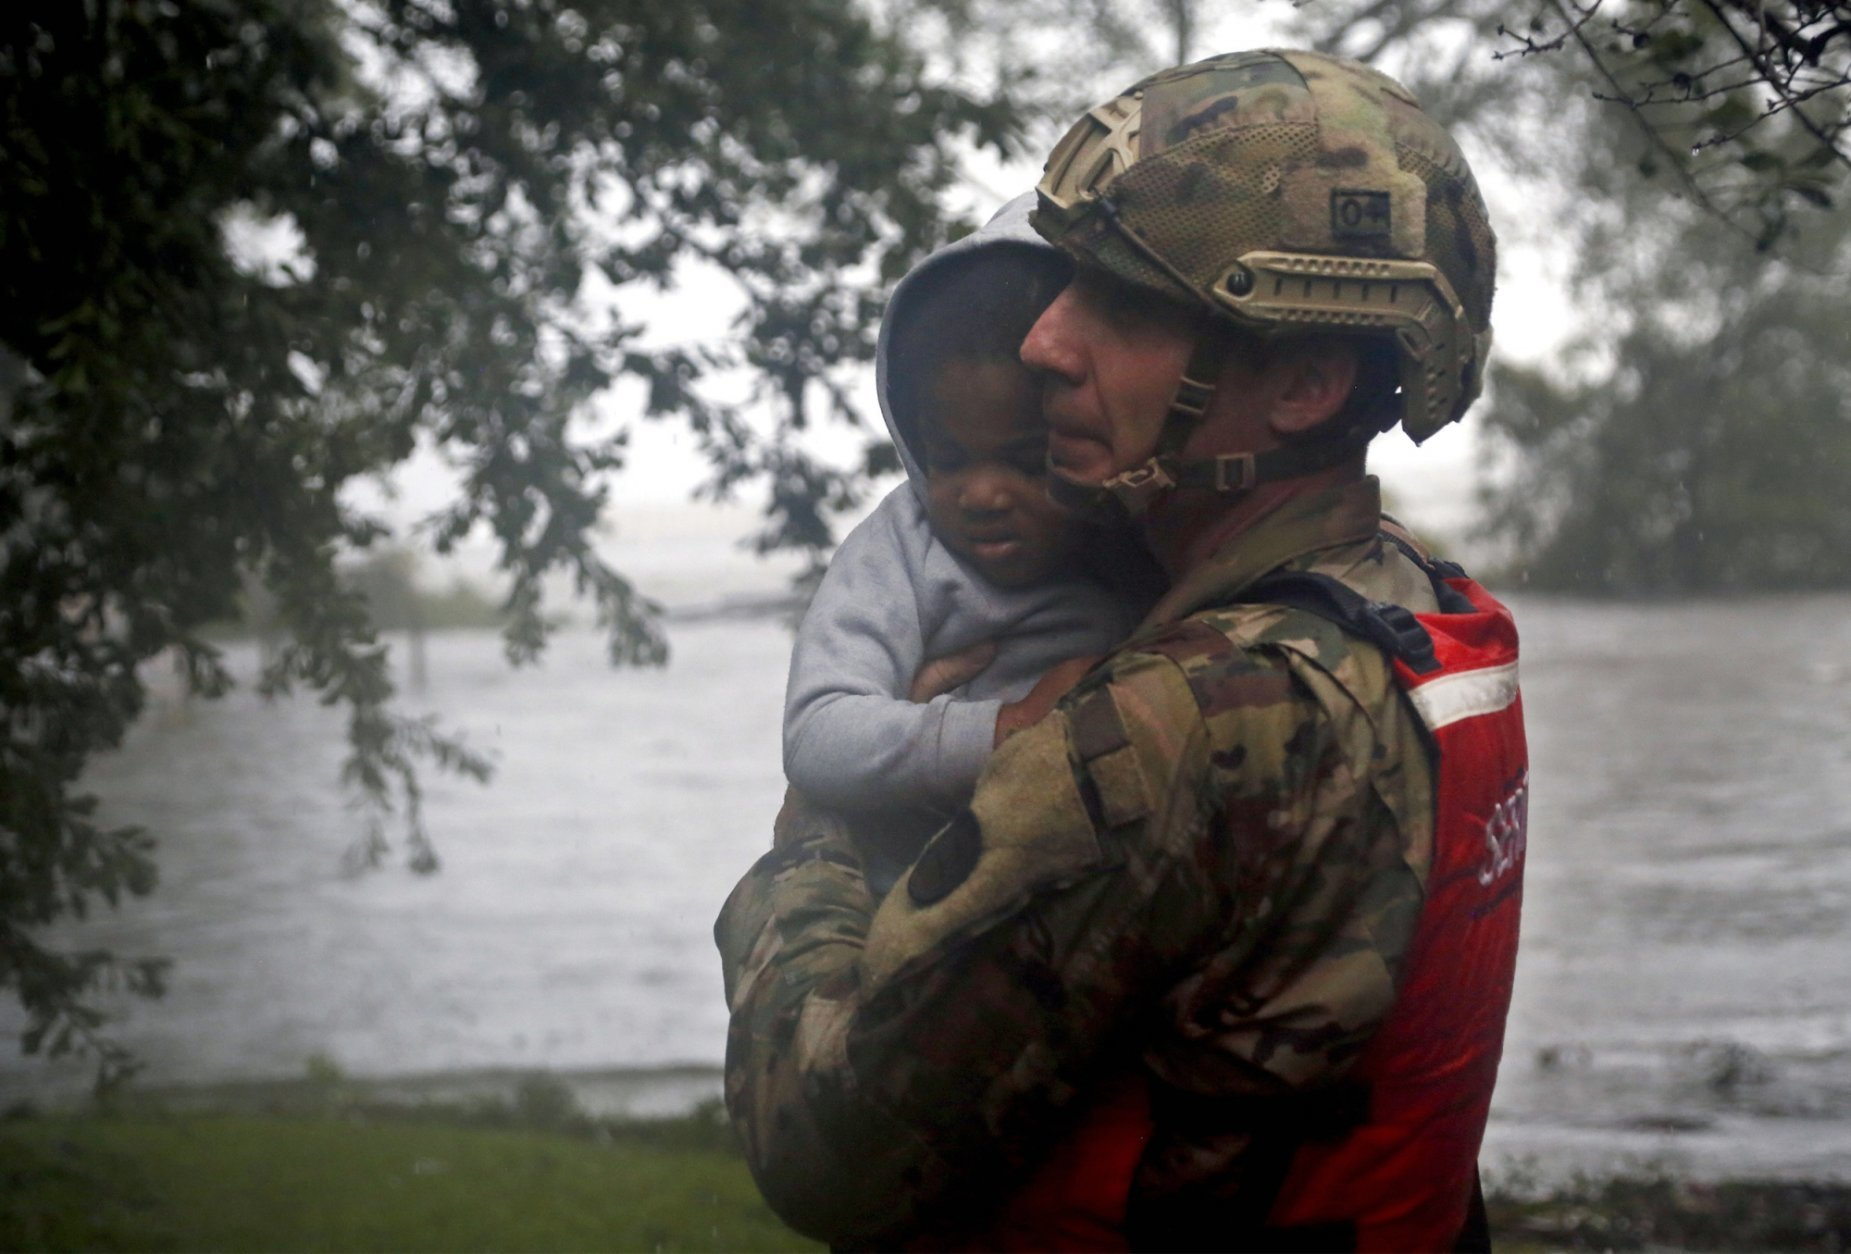 Rescue team member Sgt. Nick Muhar, from the North Carolina National Guard 1/120th battalion, evacuates a young child as the rising floodwaters from Hurricane Florence threatens his home in New Bern, N.C., on Friday, Sept. 14, 2018. (AP Photo/Chris Seward)